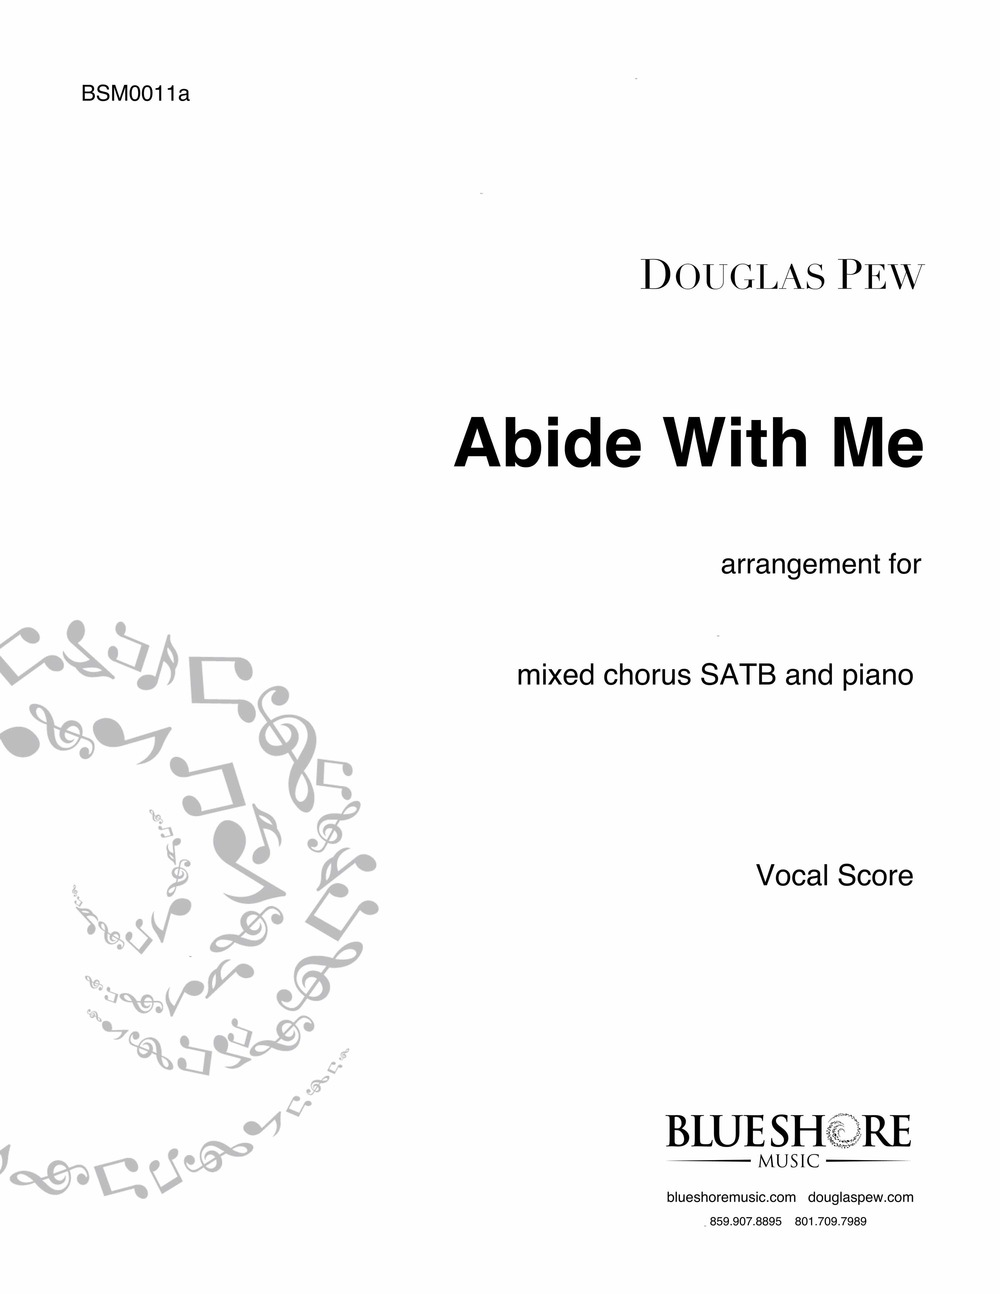 Abide With Me, for SATB and Organ